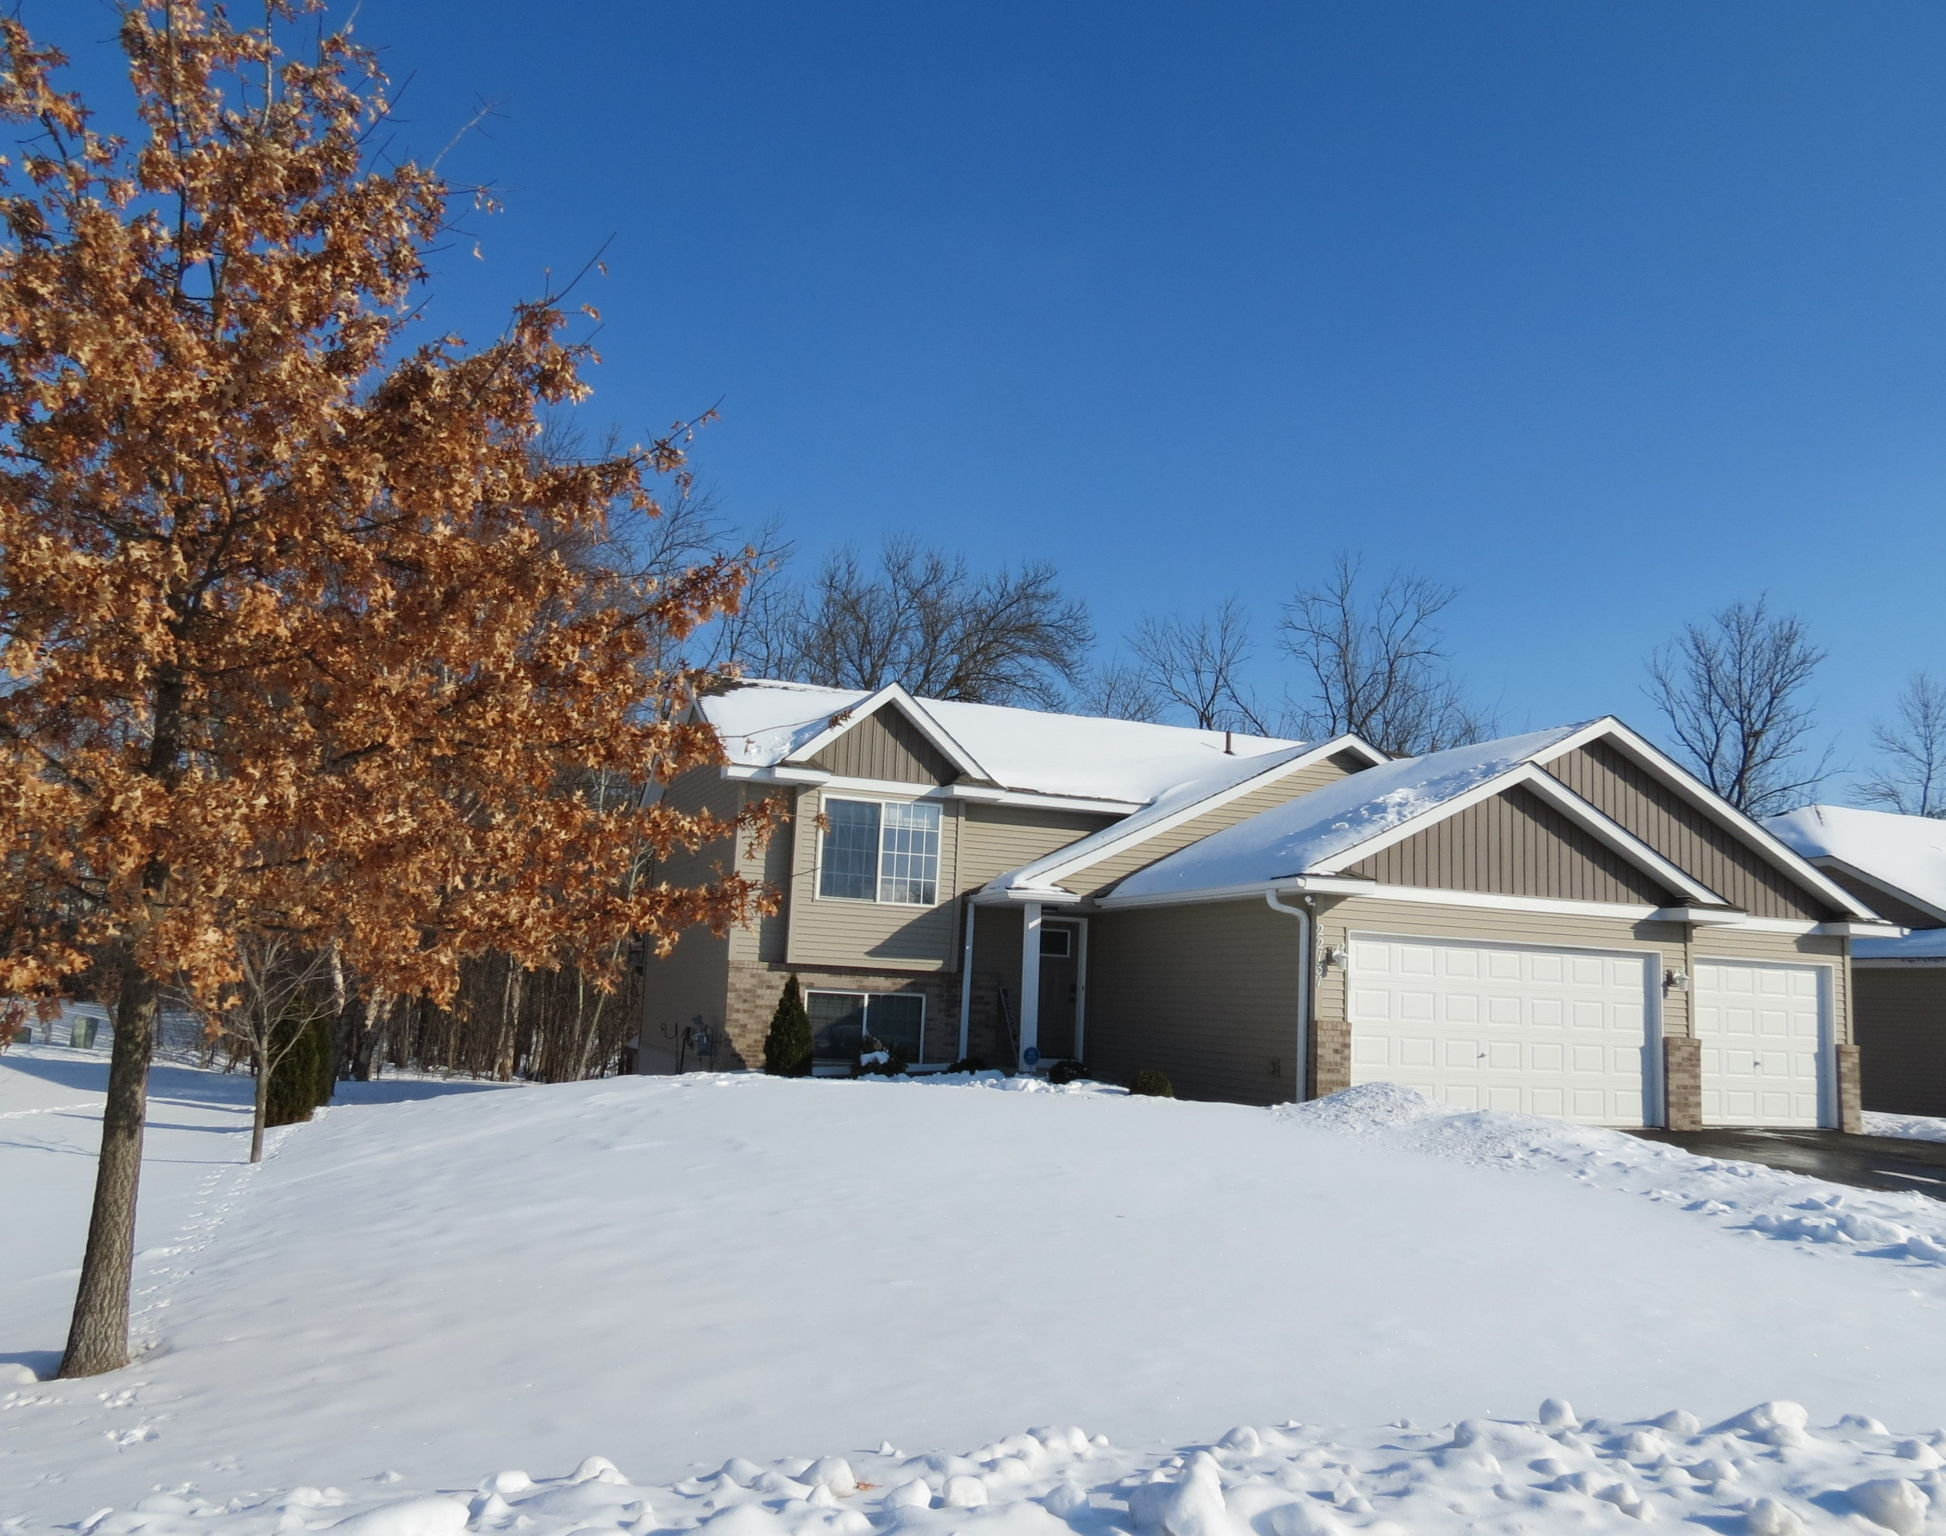 Welcome to 22131 Ethan Ave N. Forest Lake MN